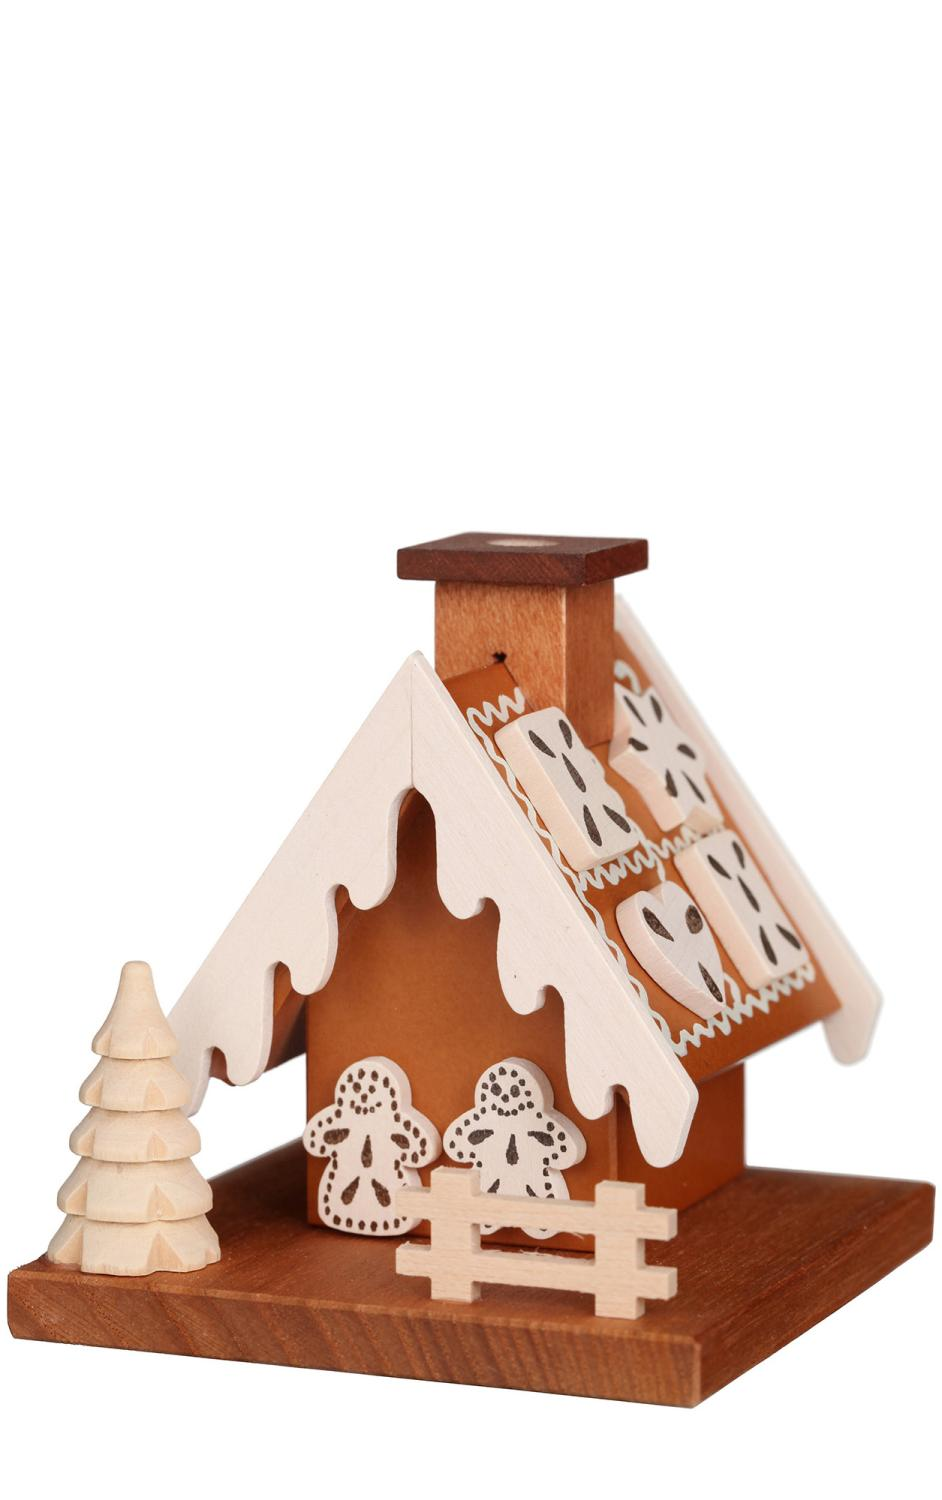 1-033 - Christian Ulbricht Incense Burner - Gingerbread House (Natural) - 3.5